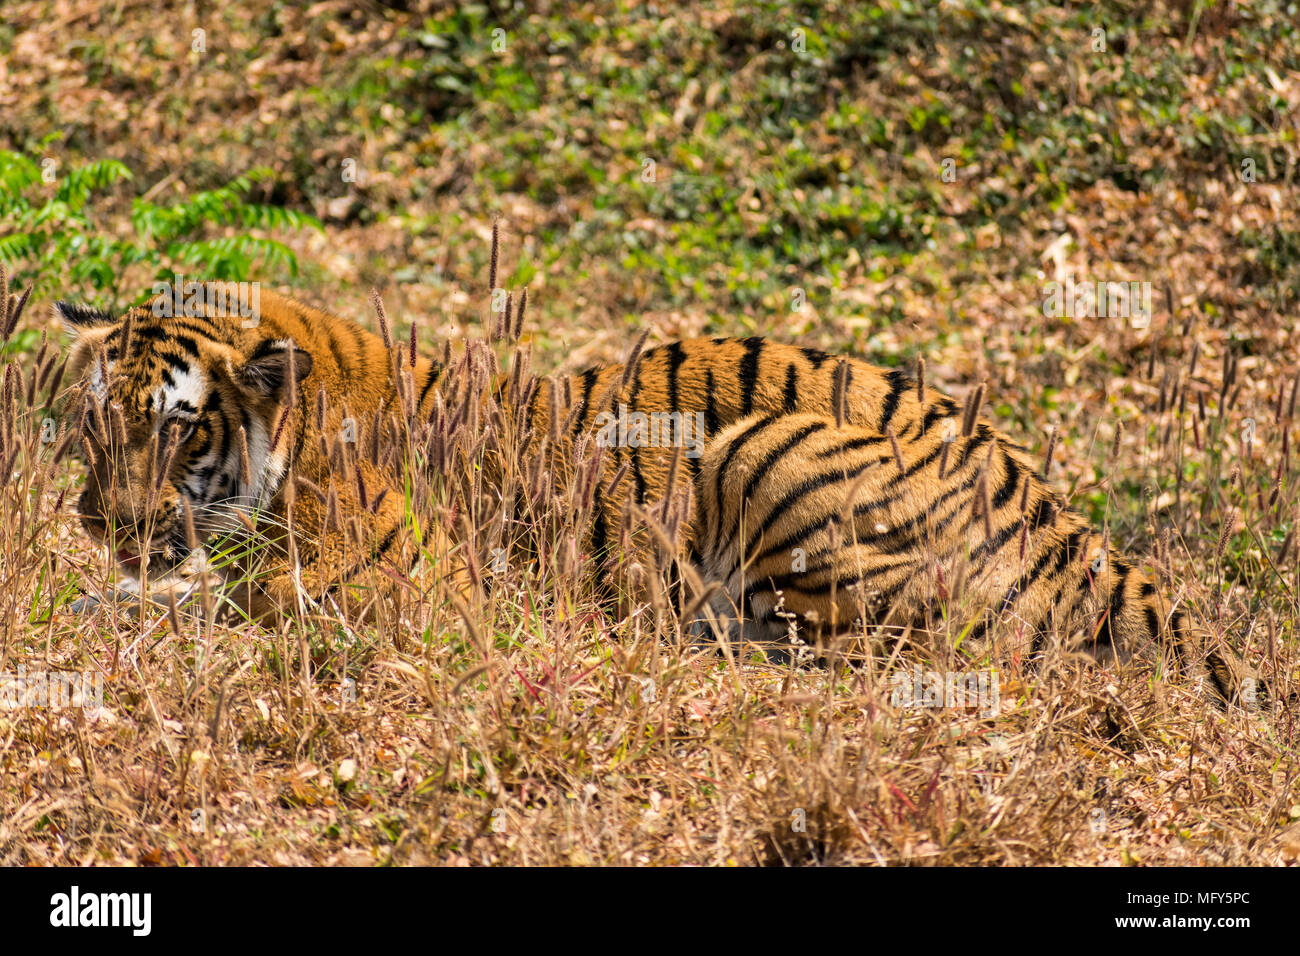 Bengal tiger  close view at zoo at different position at national park. Stock Photo